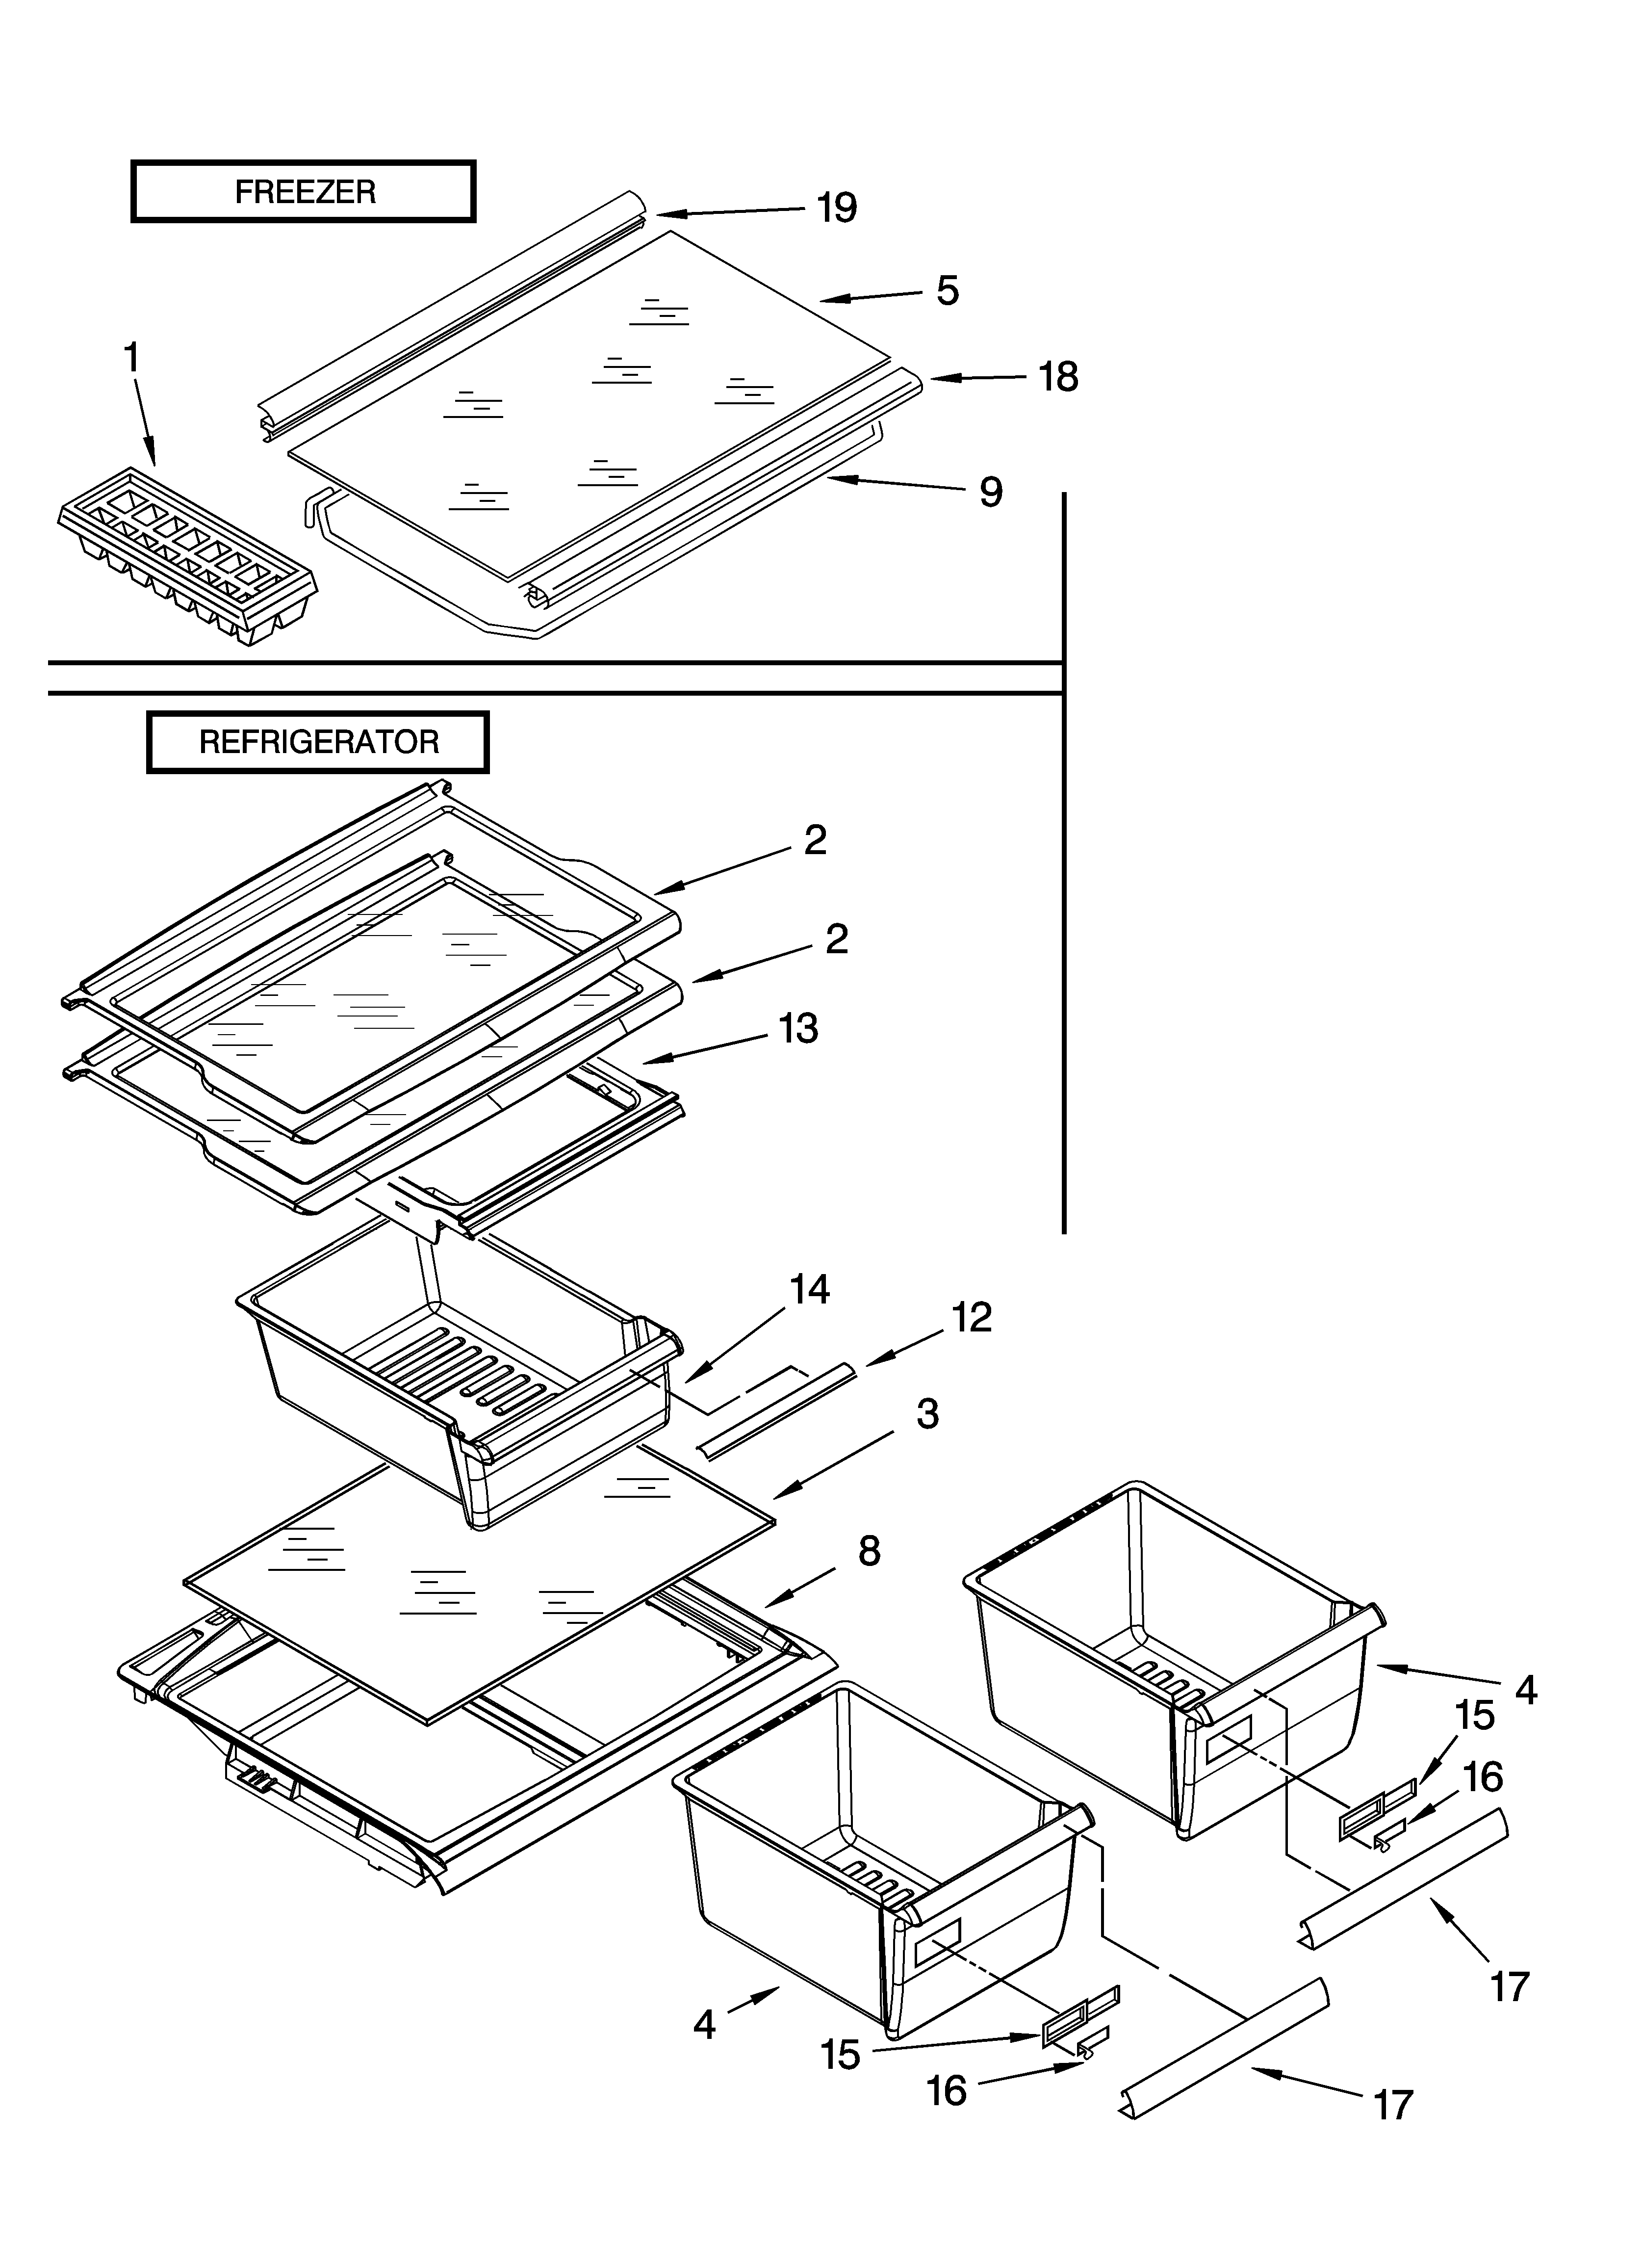 Whirlpool ER8AHKXRB01 shelf parts, optional parts (not included) diagram